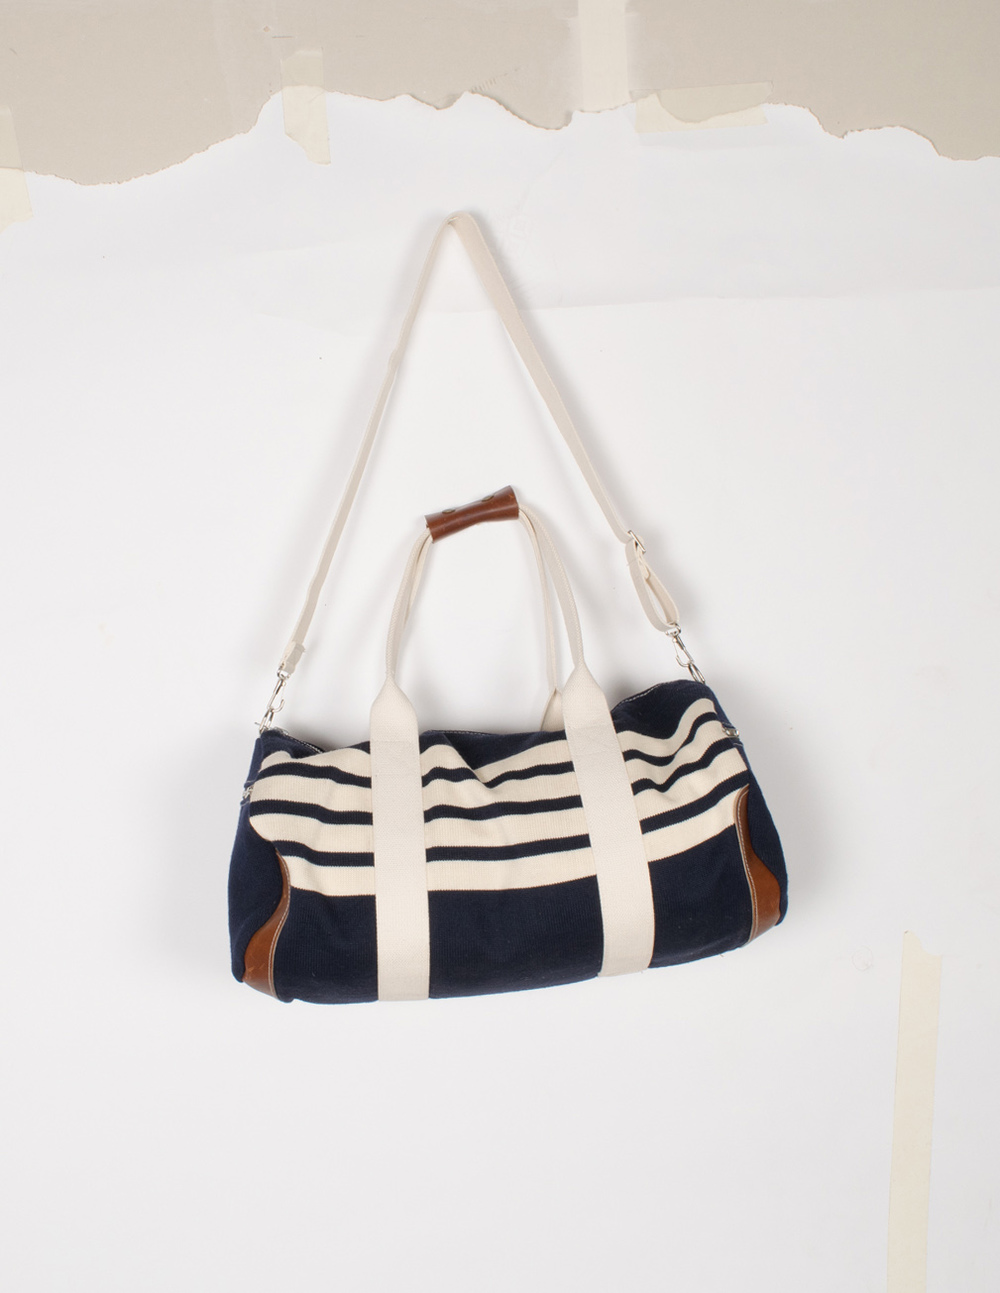 Knit Duffel Bag - Navy/Off-White - $155/$320